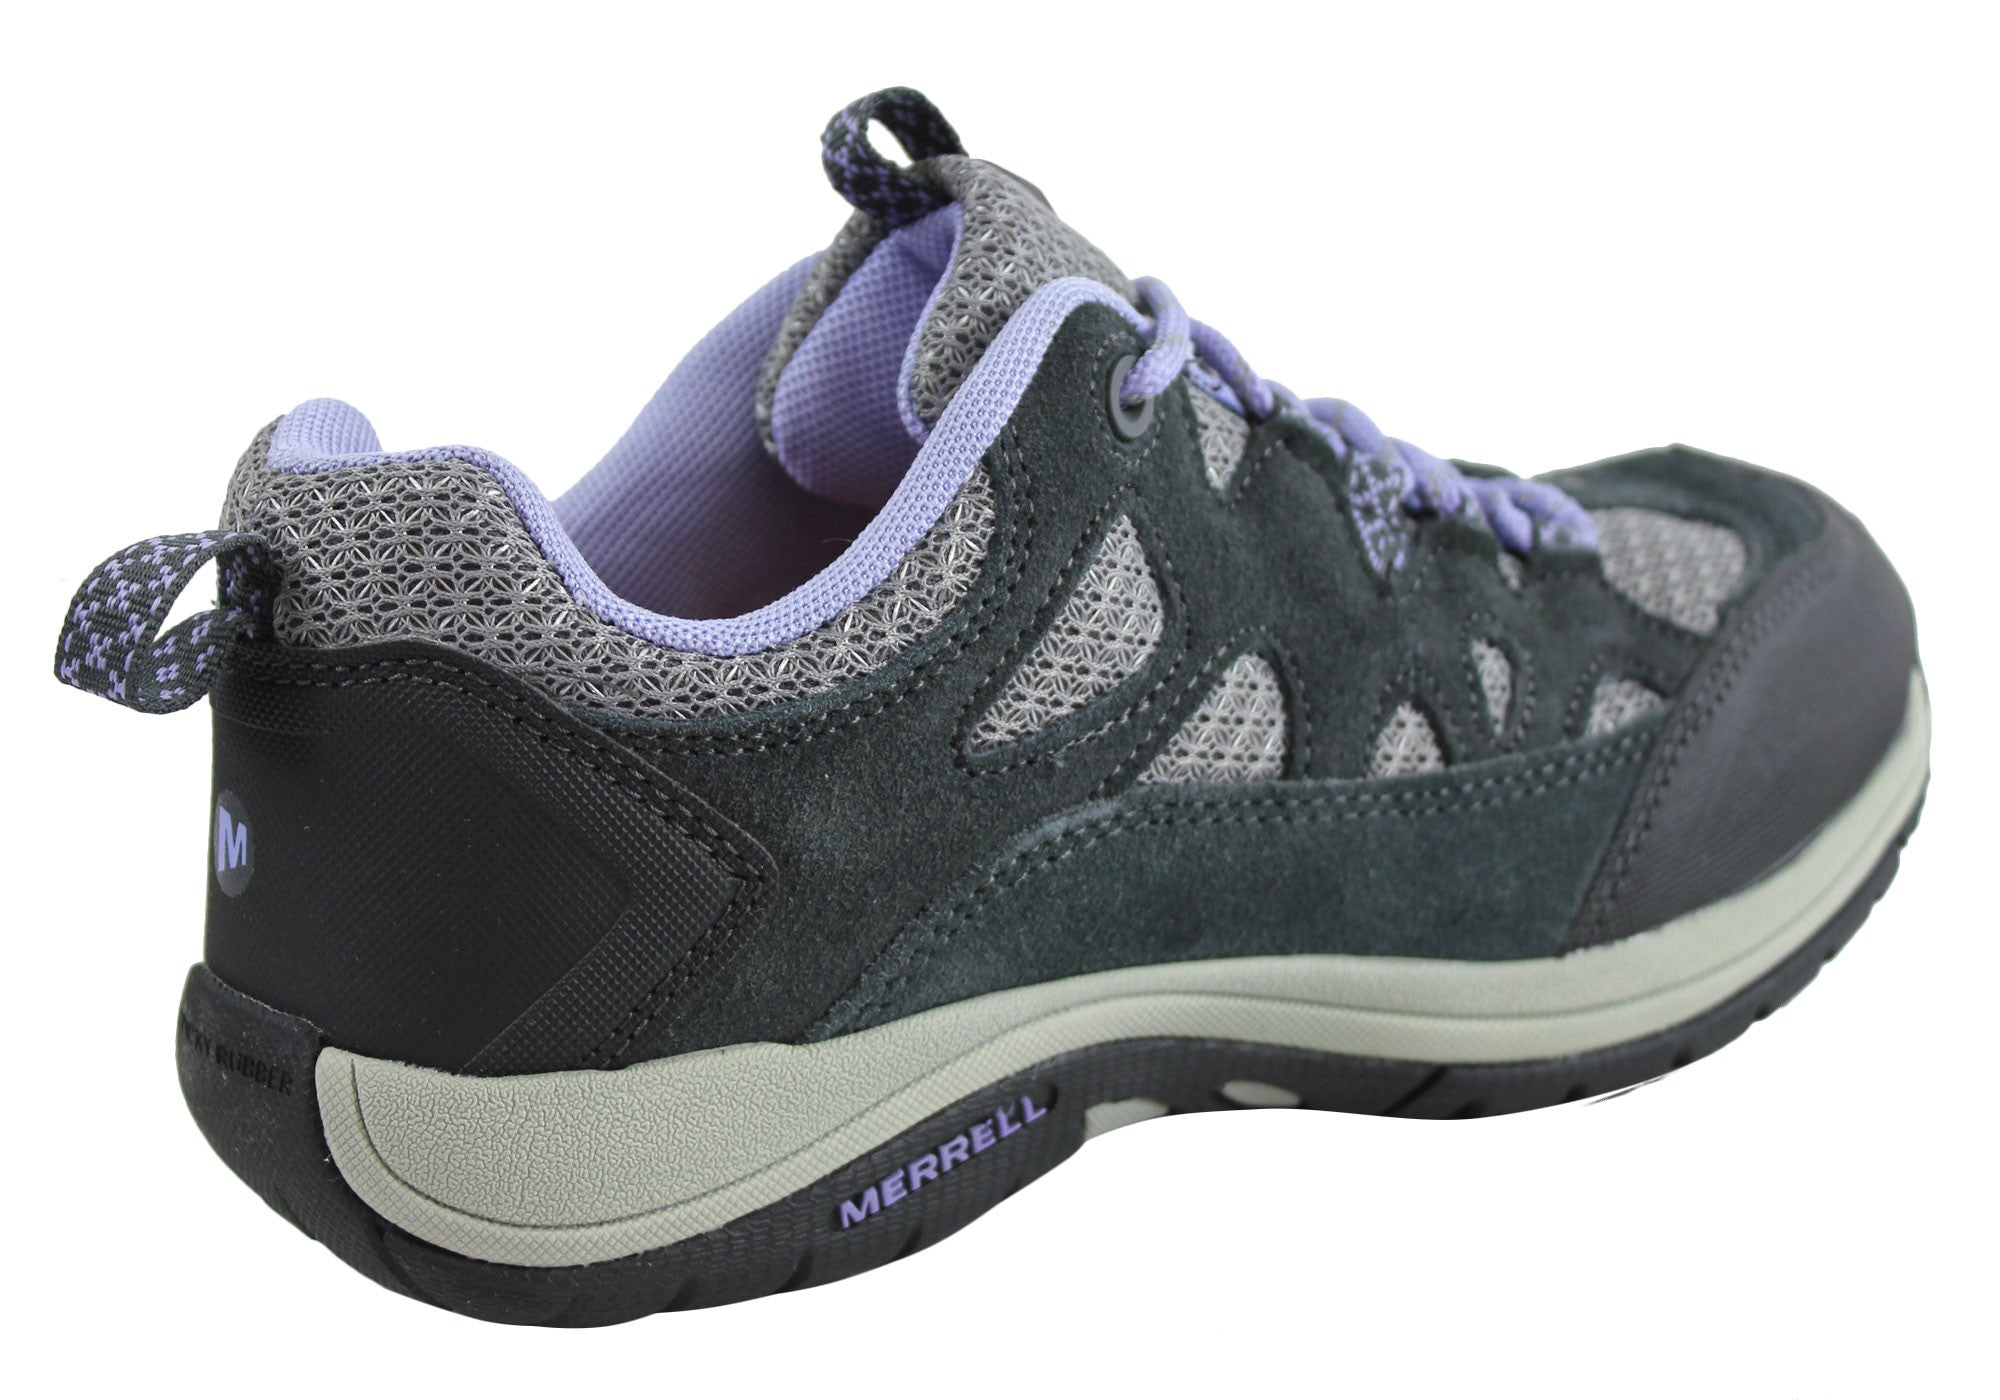 Merrell Zeolite Womens Lace Up Hiking Casual Shoes